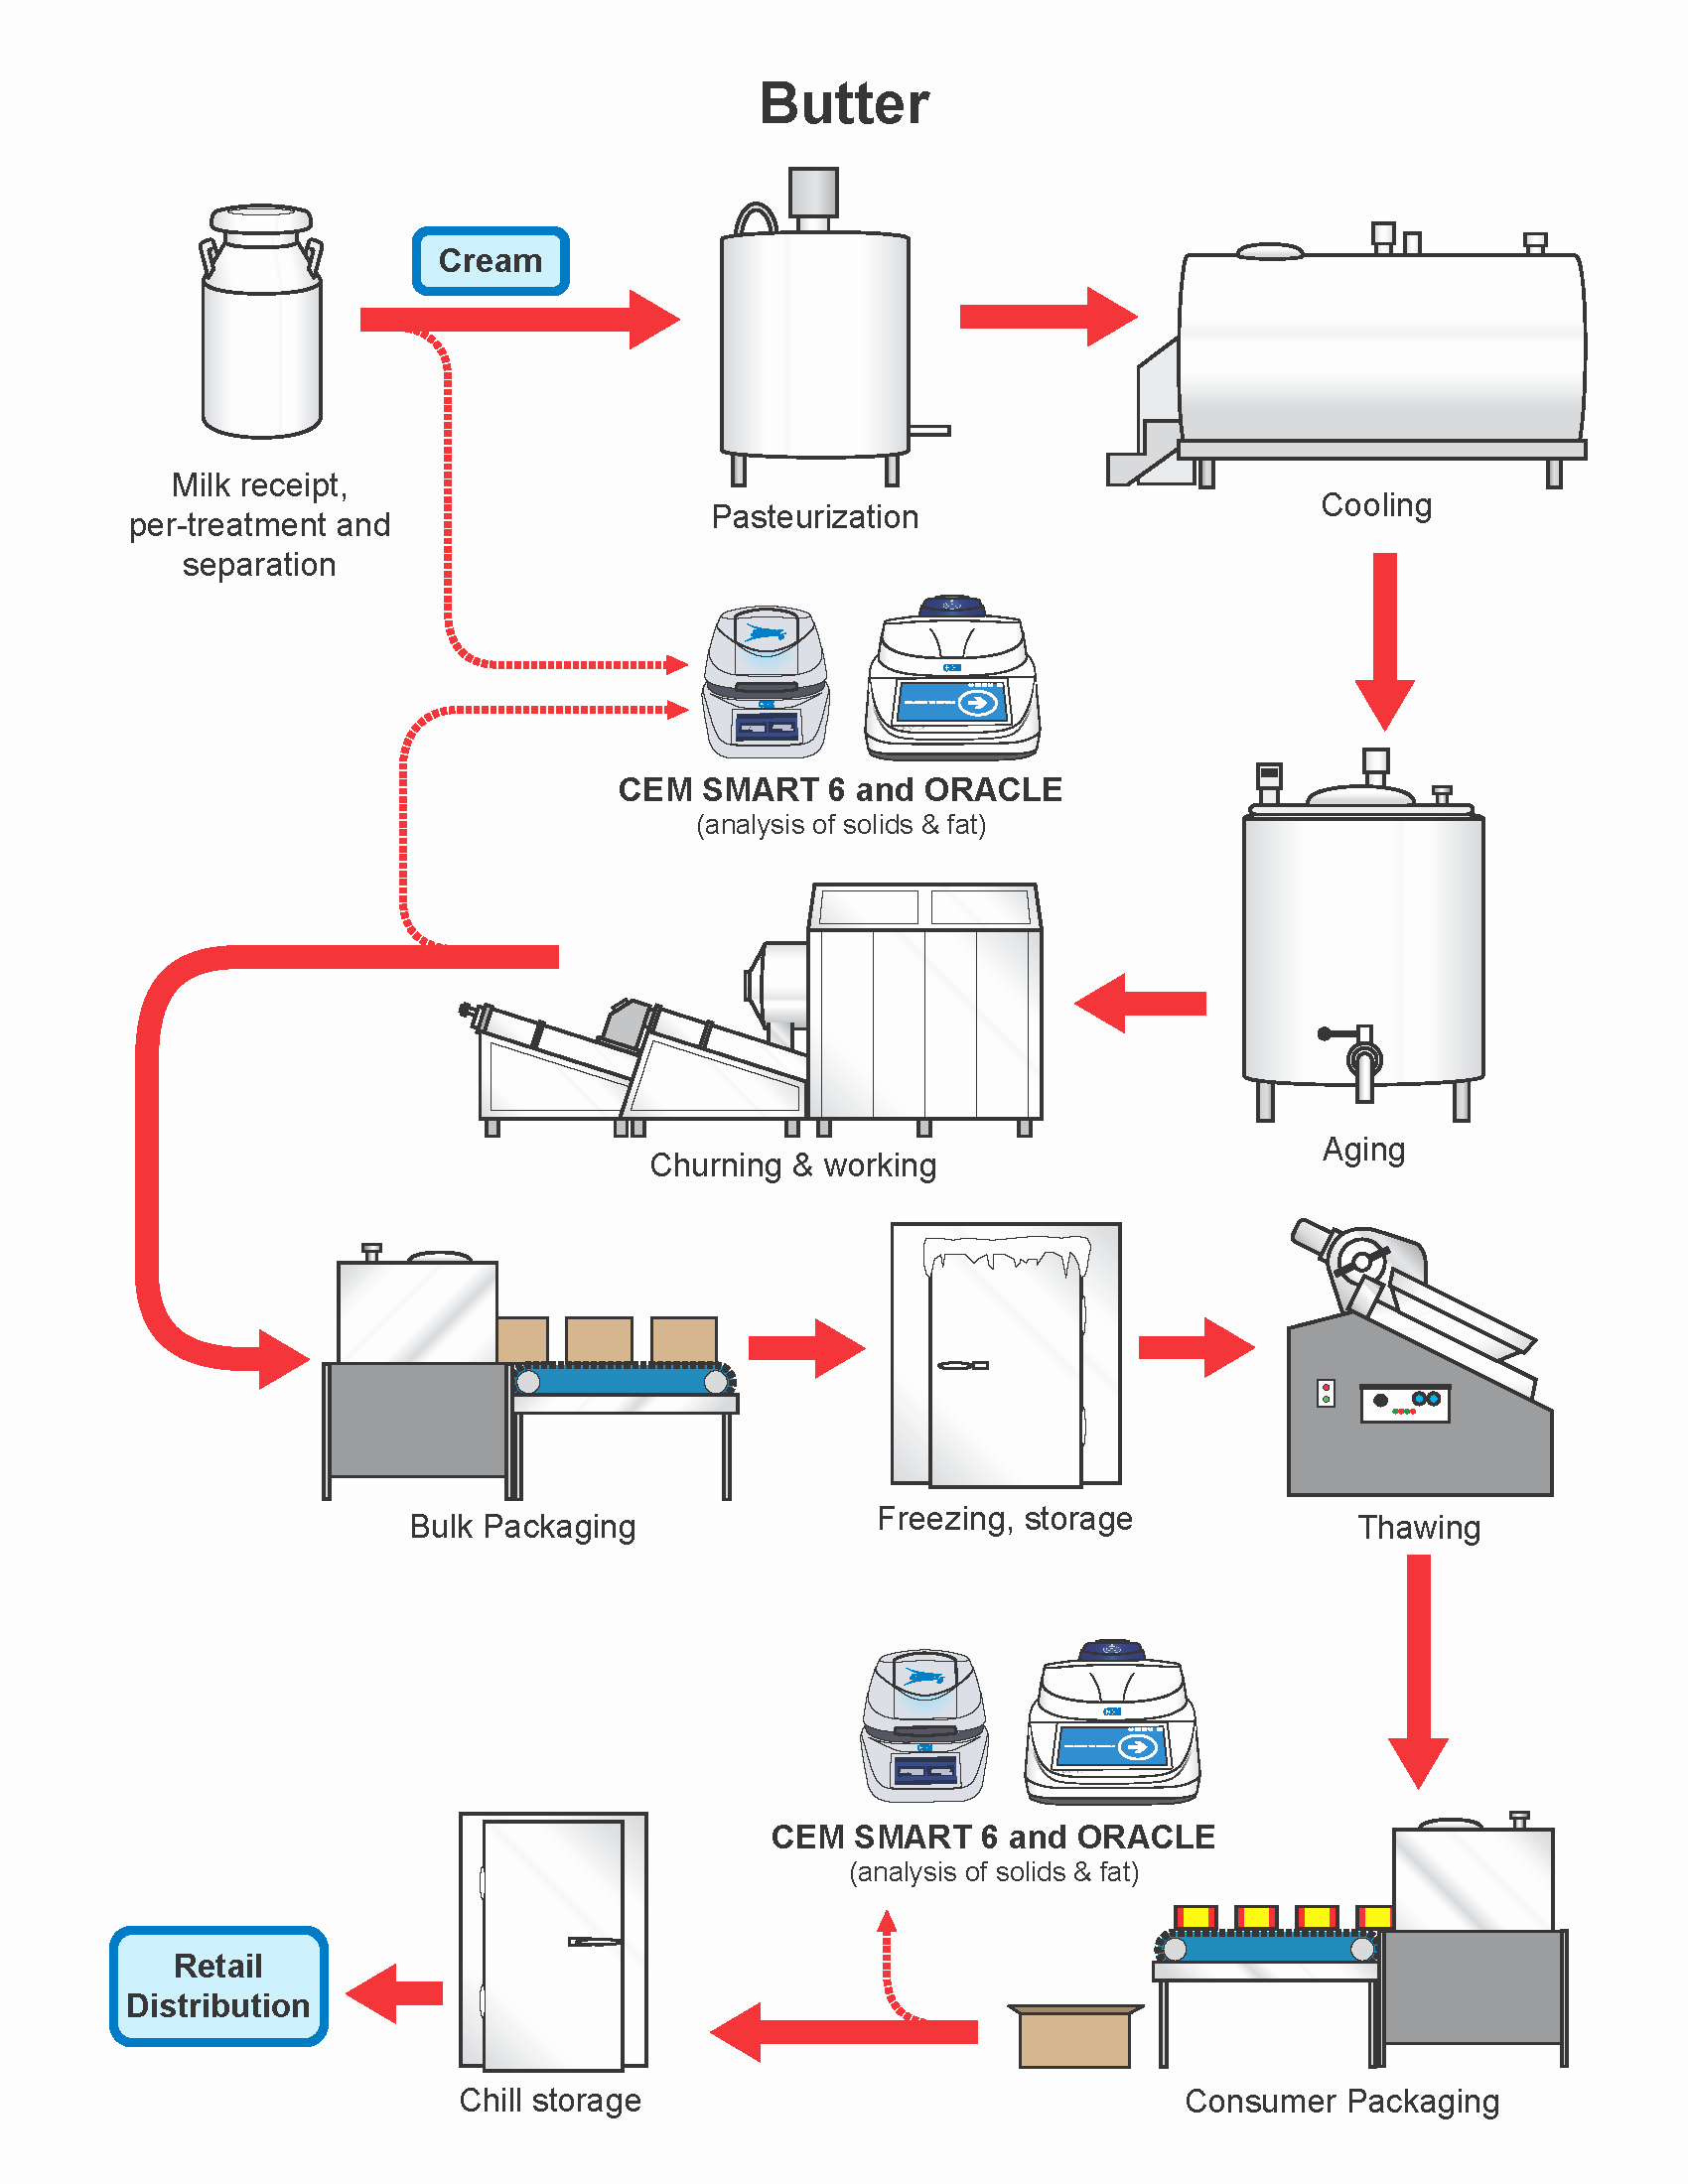 Manufacturing Process Flow Chart Luxury butter and Dairy Spreads – butter